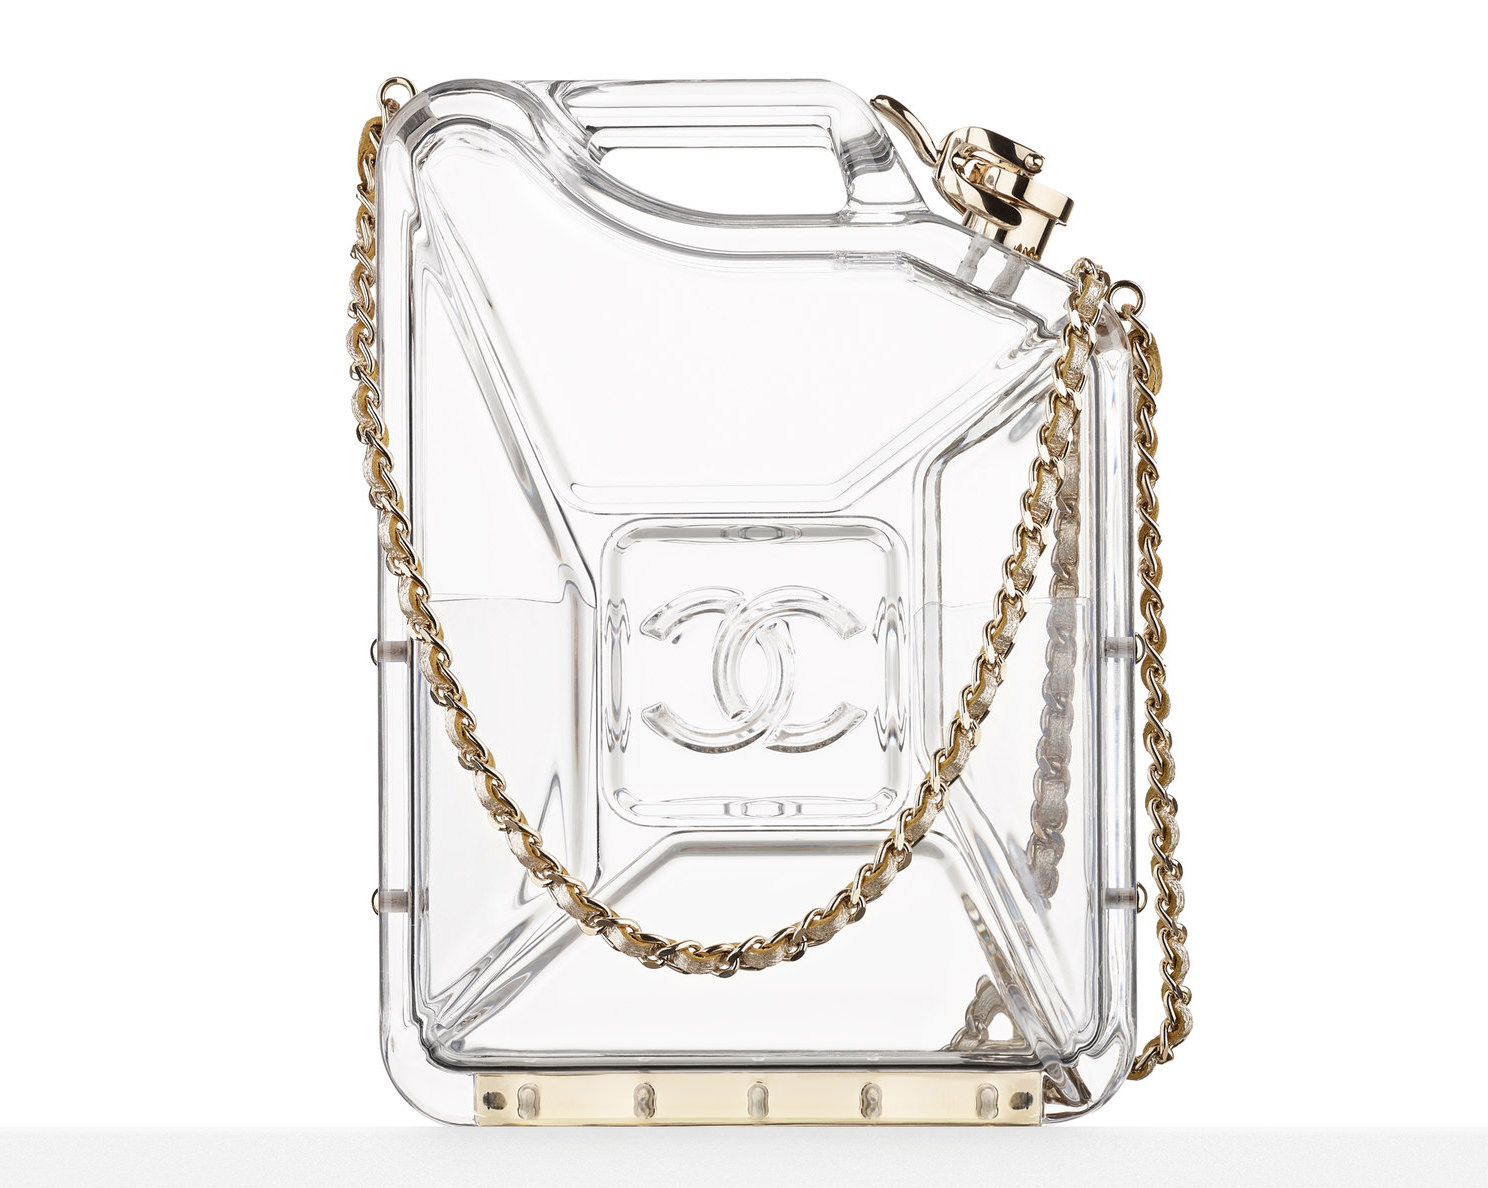 037b5ba4cdcb26 Check Out Chanel's Dubai-Themed Cruise 2015 Bags, in Boutiques Now ...